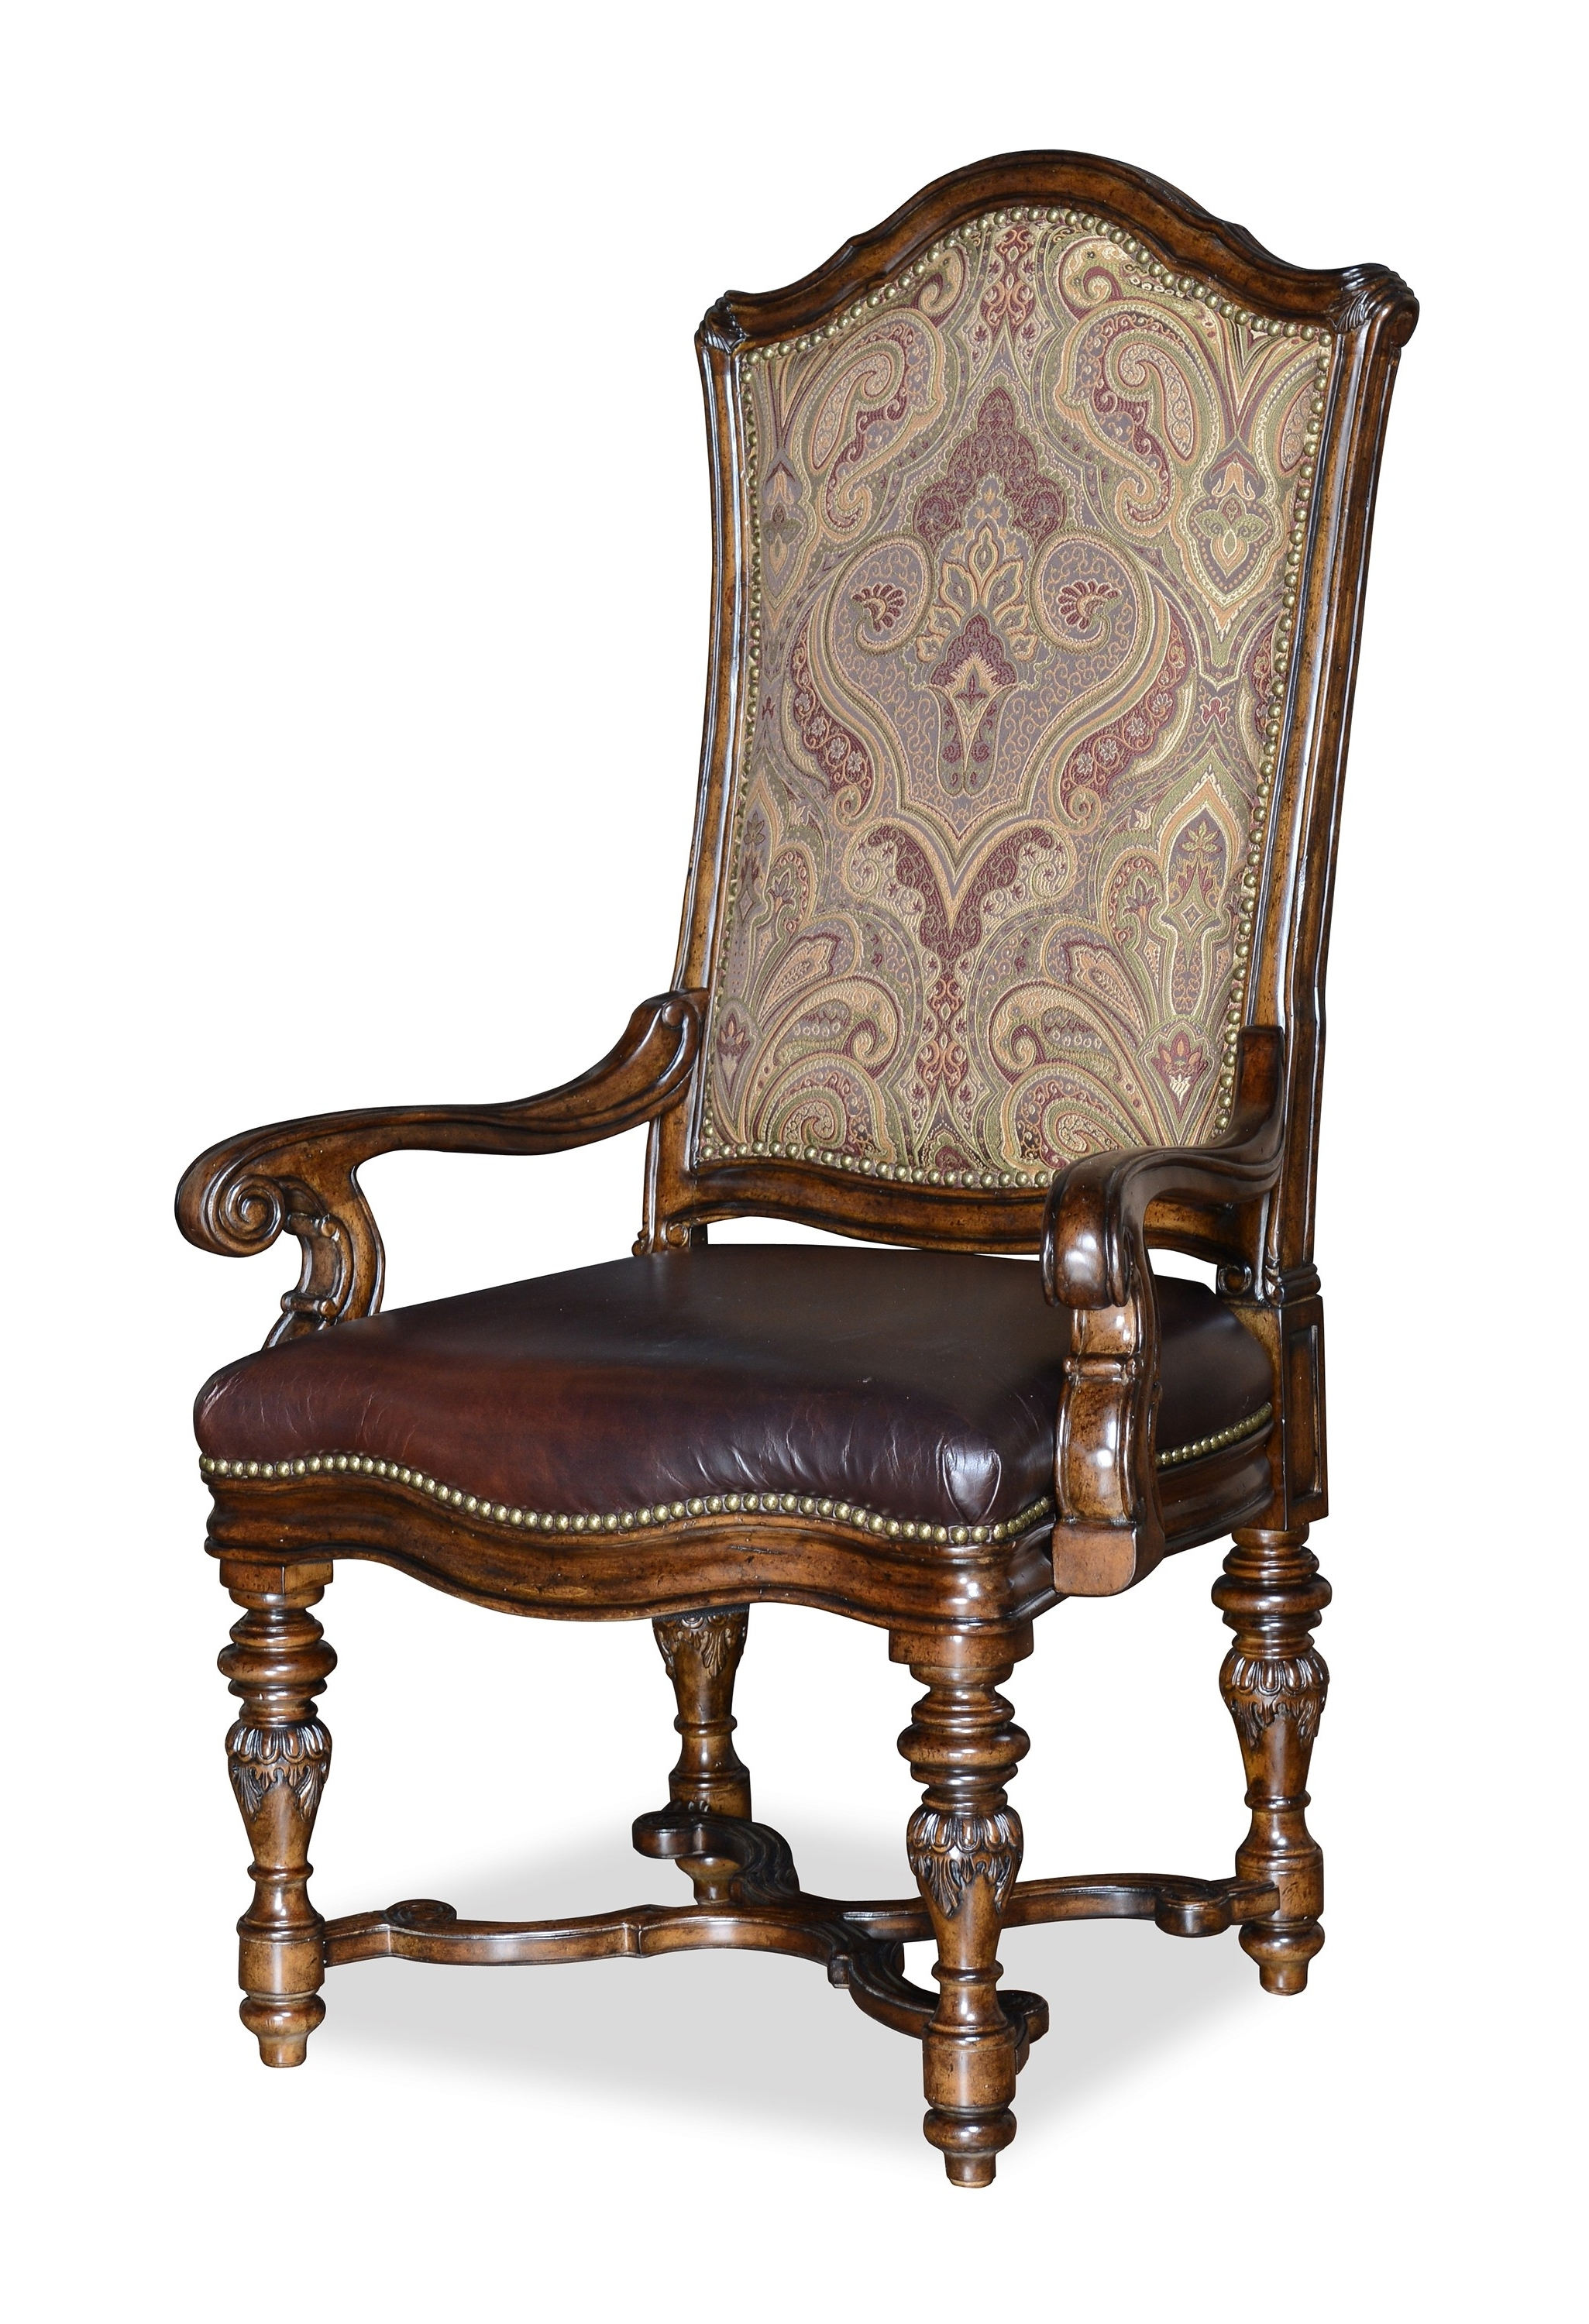 Valencia Side Chair Pertaining To Most Current Valencia Side Chairs With Upholstered Seat (Gallery 2 of 20)